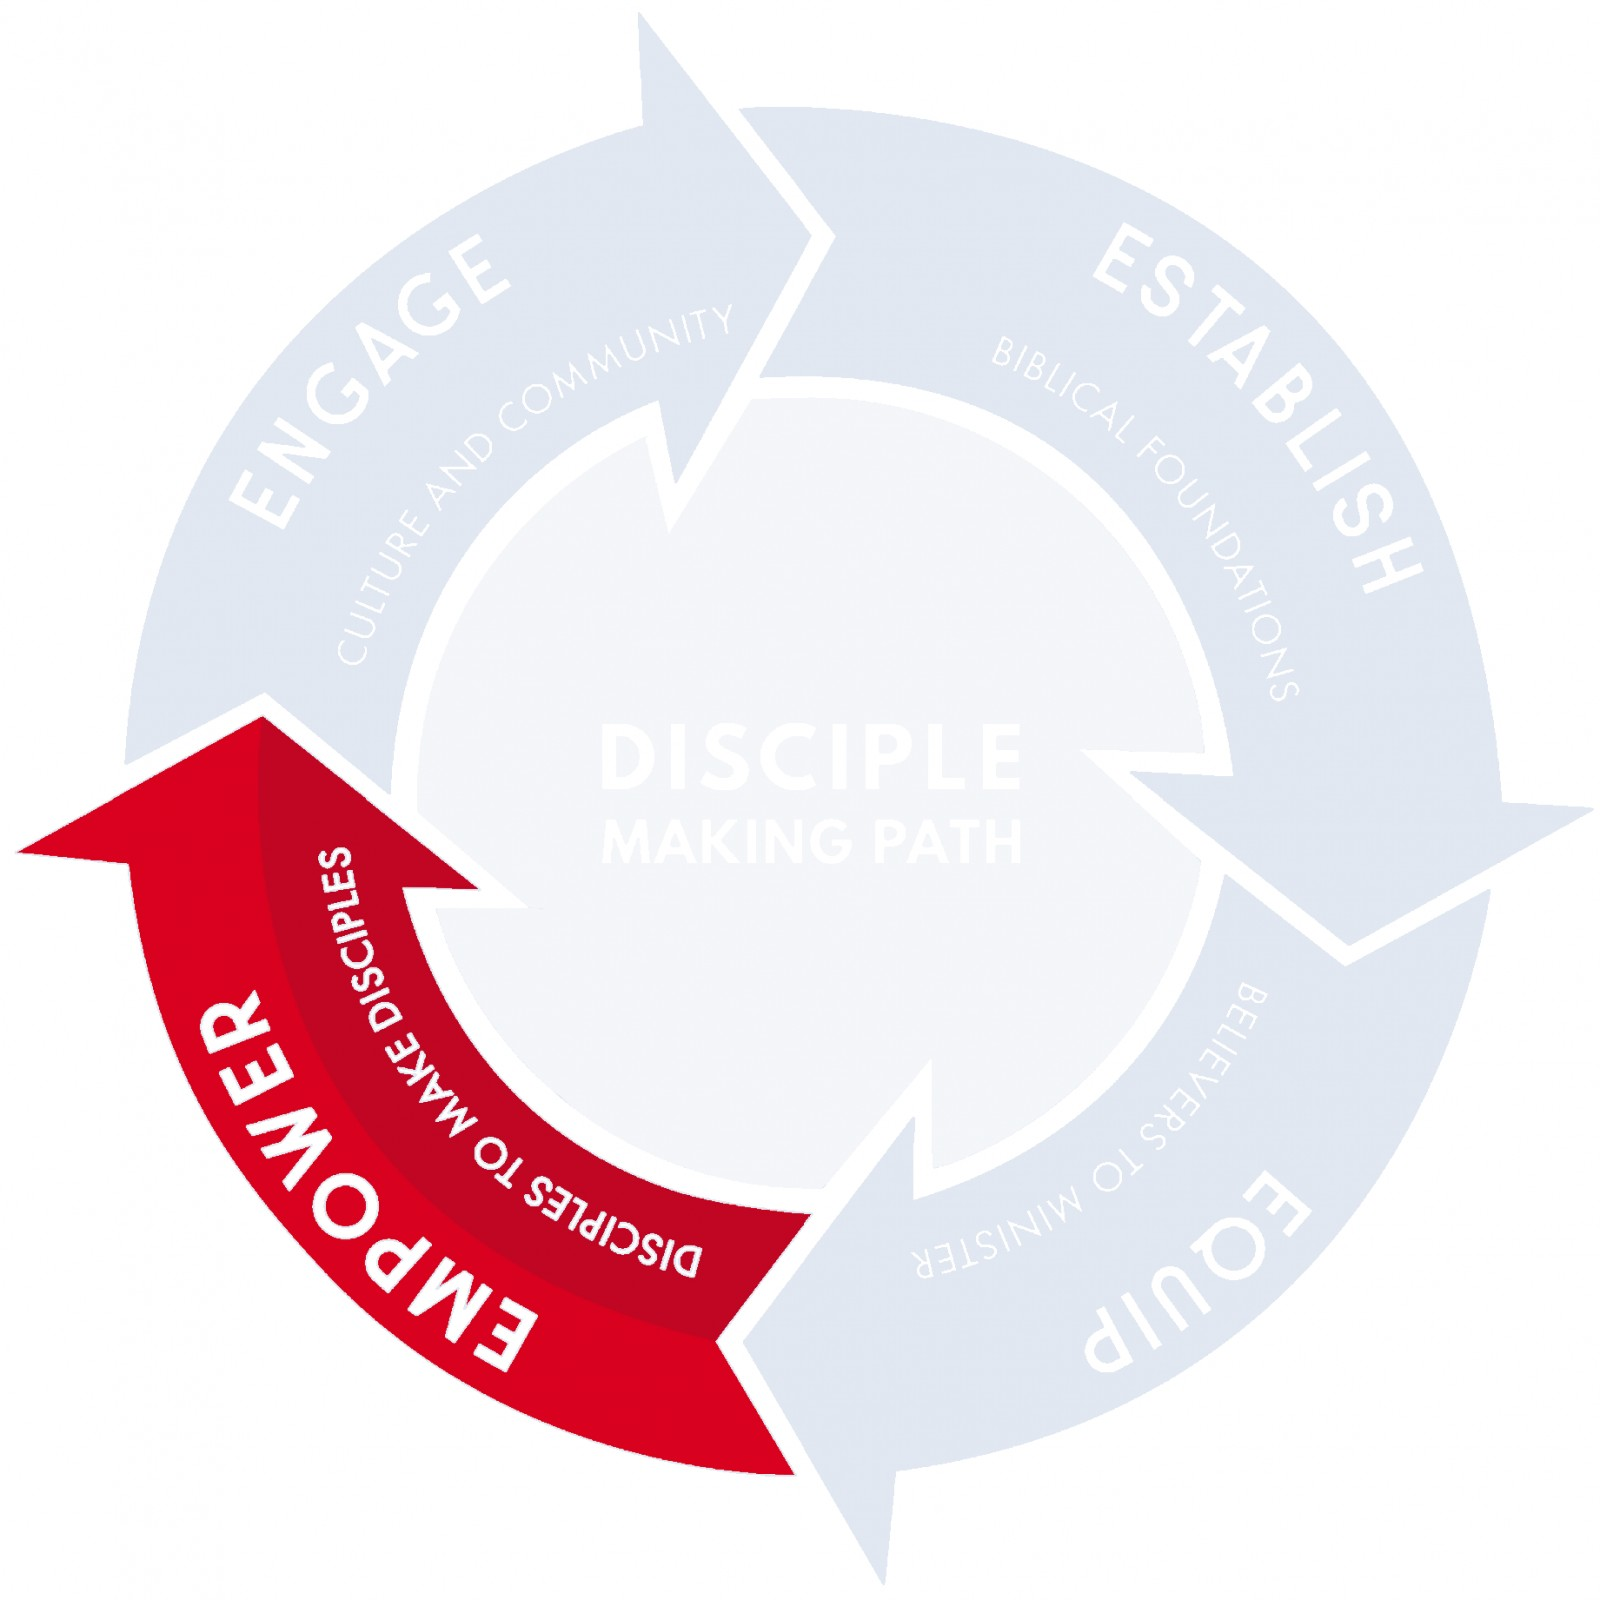 Empower Disciples to Make Disciples